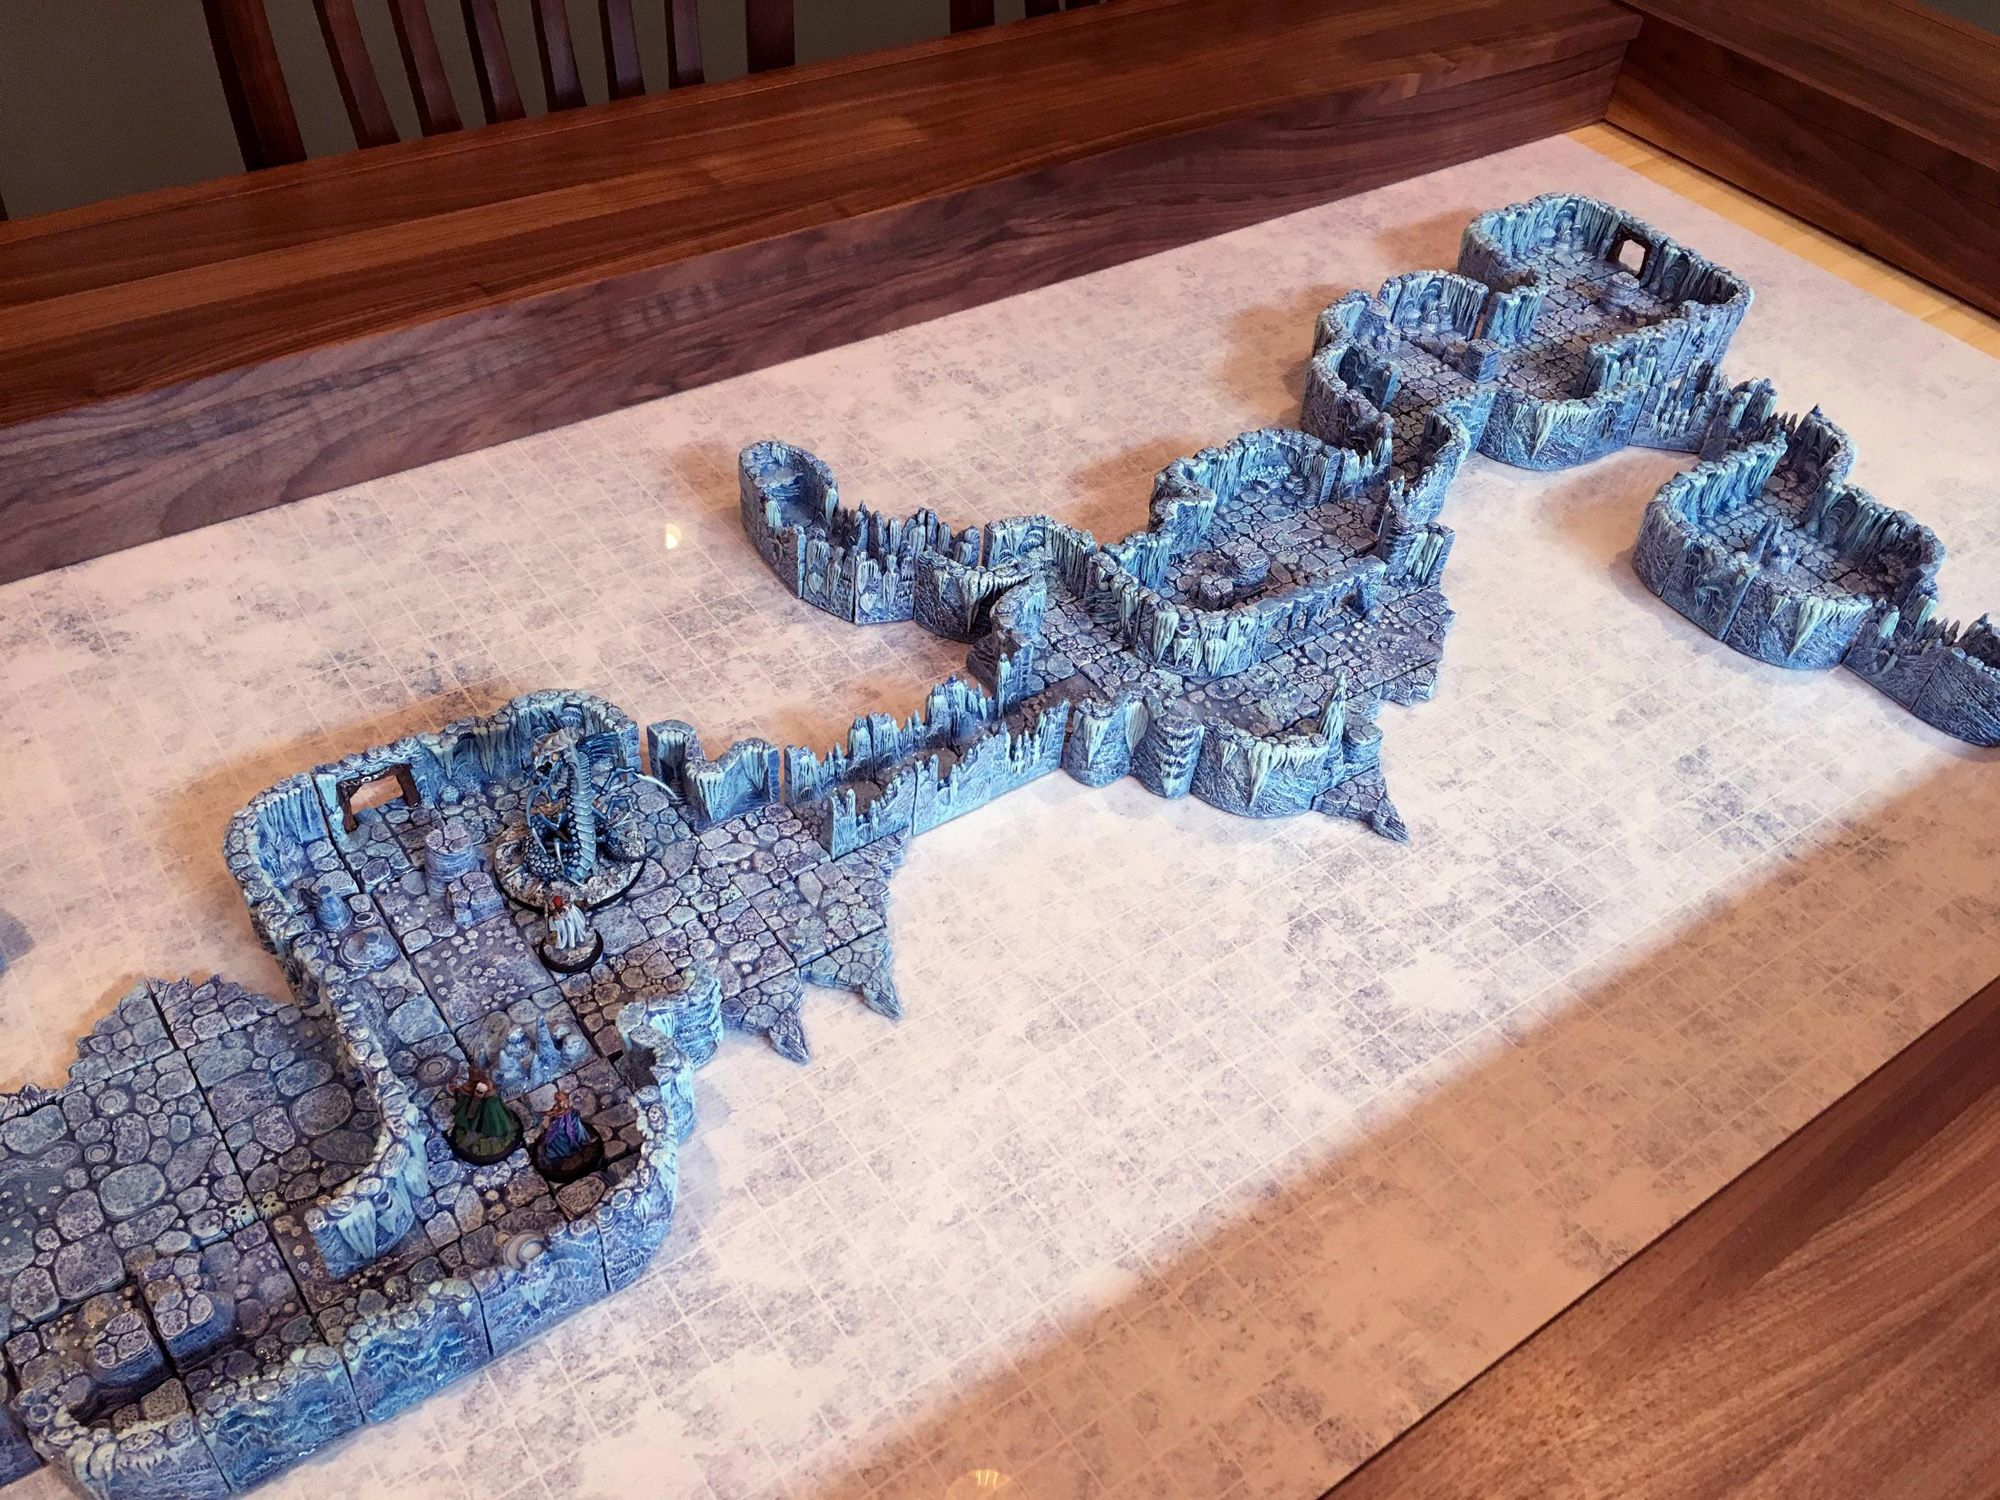 Pathfinder Game Mat Pictures Pathfinder Game Pathfinder Dungeons And Dragons